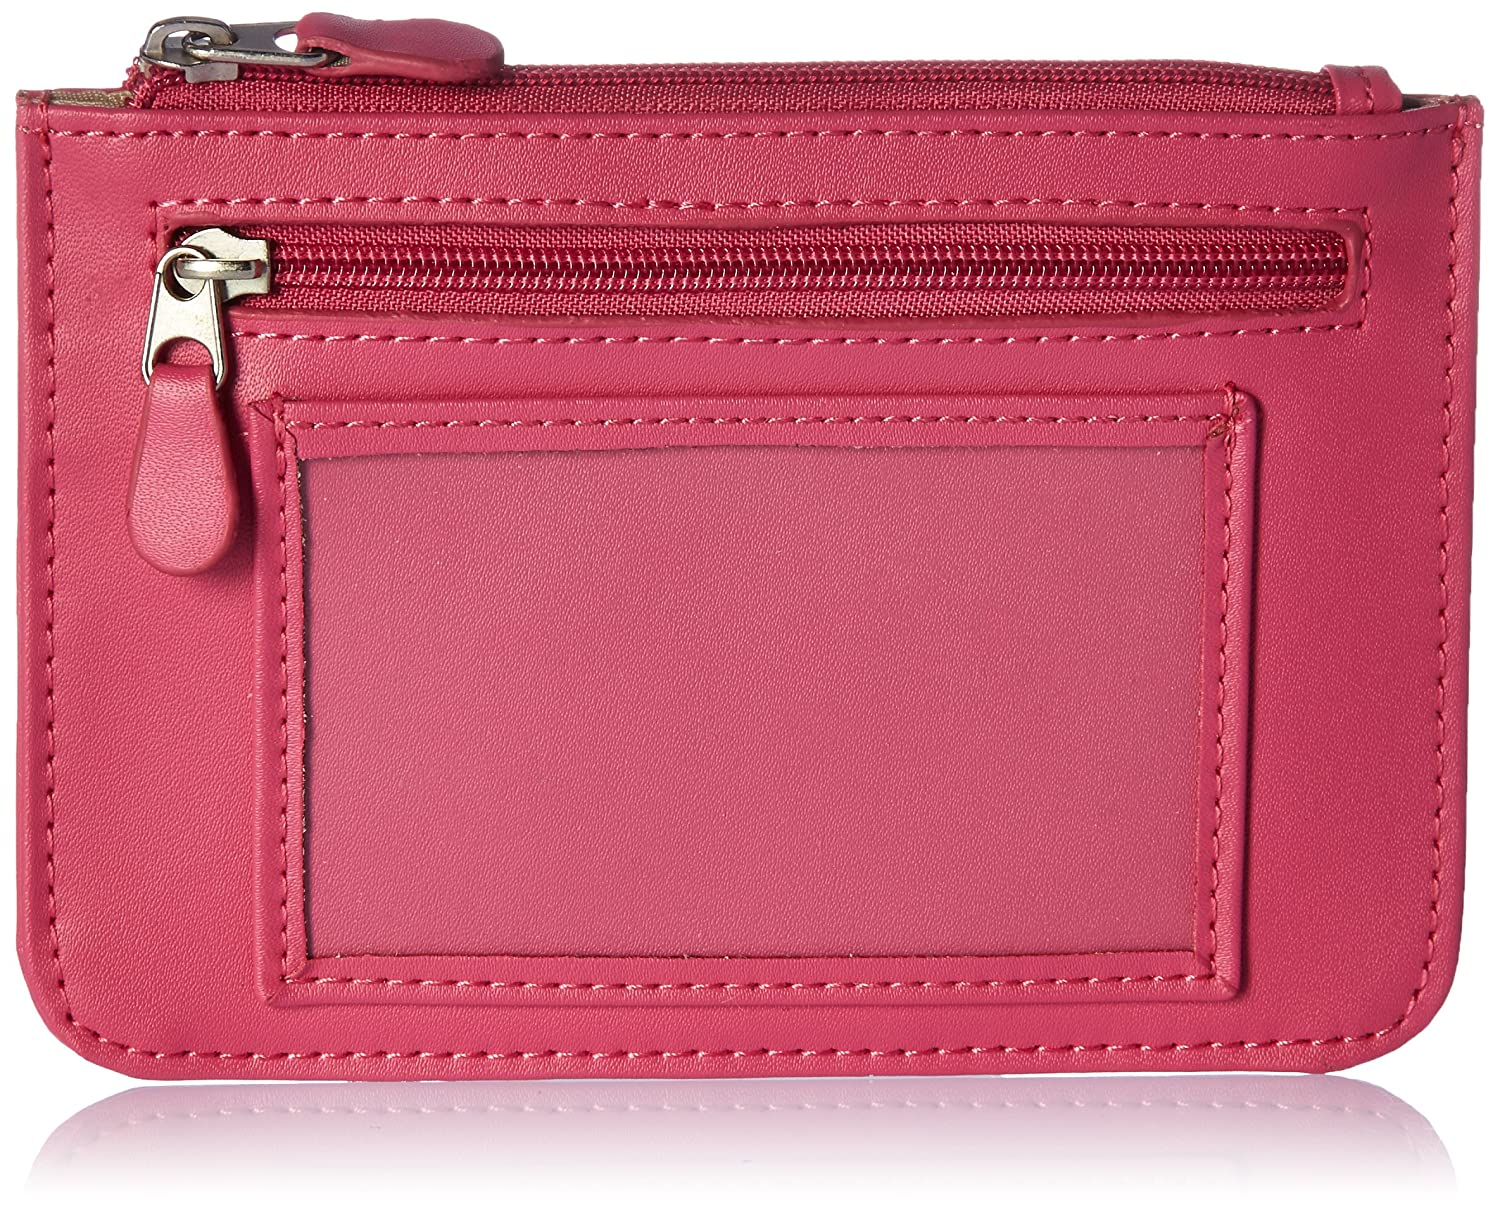 RFID-118-WB-6 Royce Leather Womens RFID Blocking Slim City Wallet in Leather DBA Royce Leather Pink EMPORIUM LEATHER